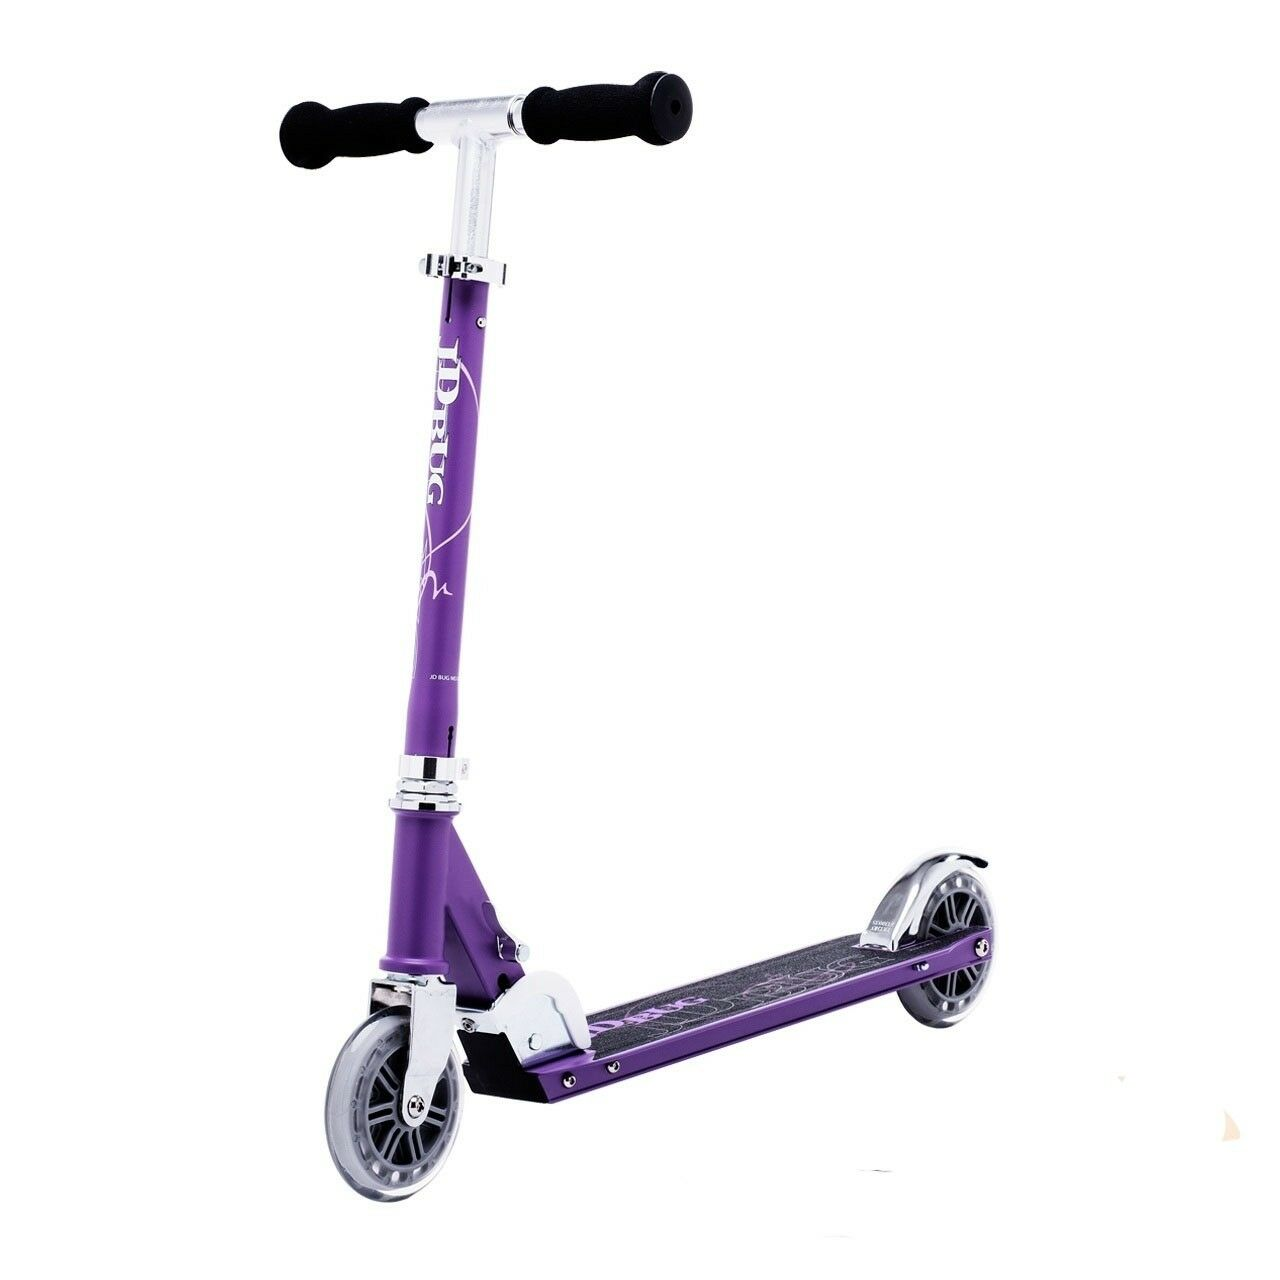 JD Bug Original Street  120 Series  Adjustable Folding Scooter - Matt Purple